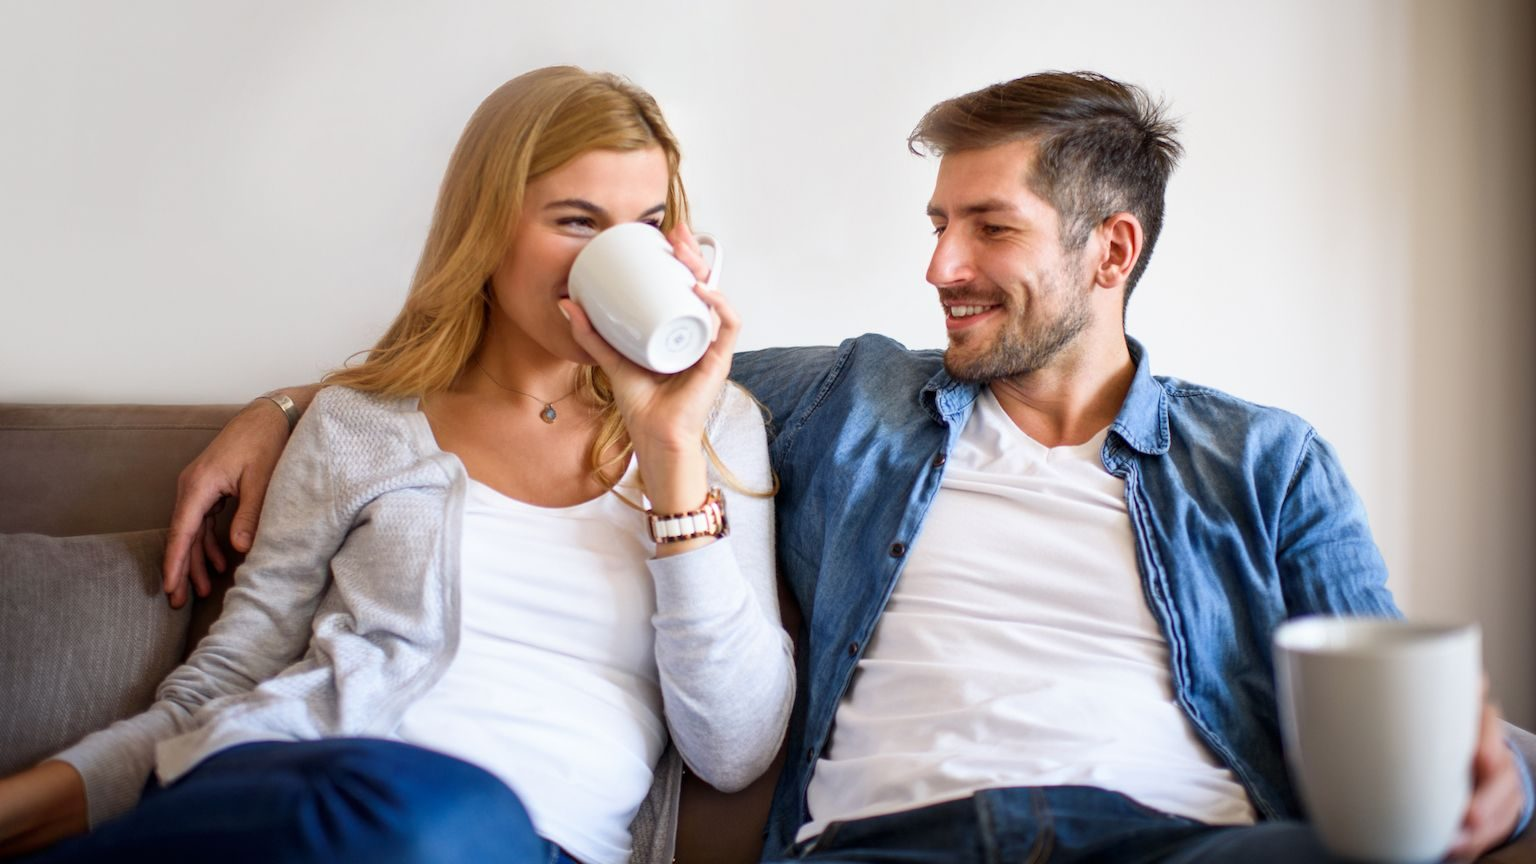 Man and woman drinking coffee on a couch in their living room